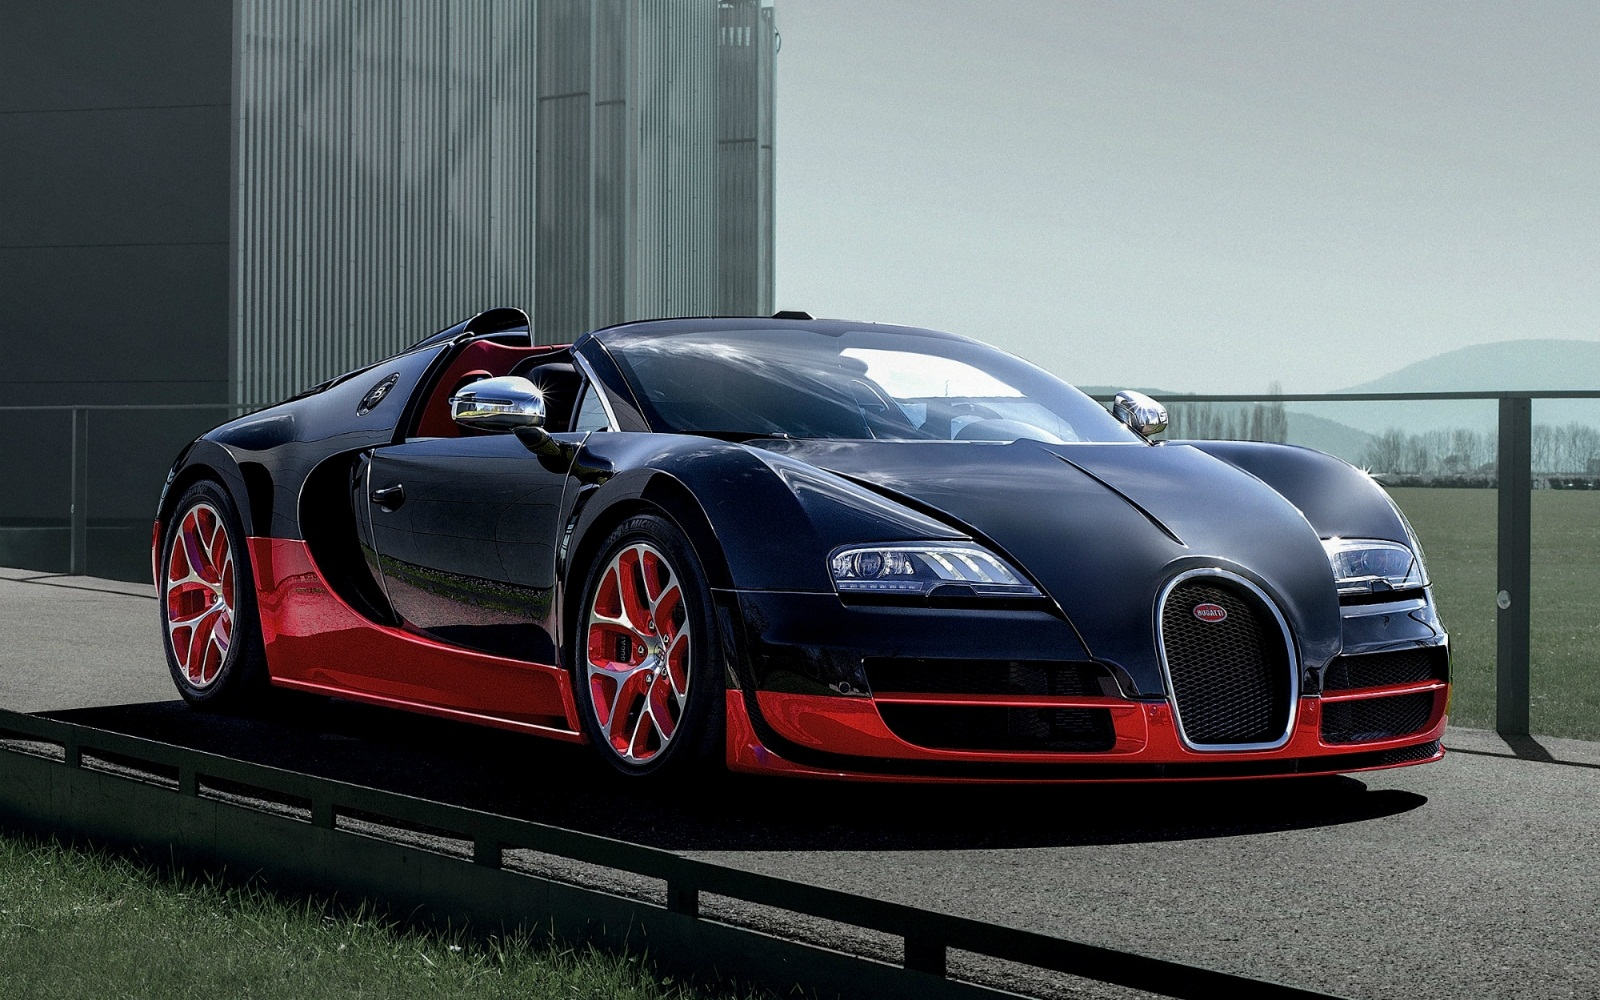 bugatti veyron 16 4 grand sport vitesse engine bugatti free engine image for user manual download. Black Bedroom Furniture Sets. Home Design Ideas